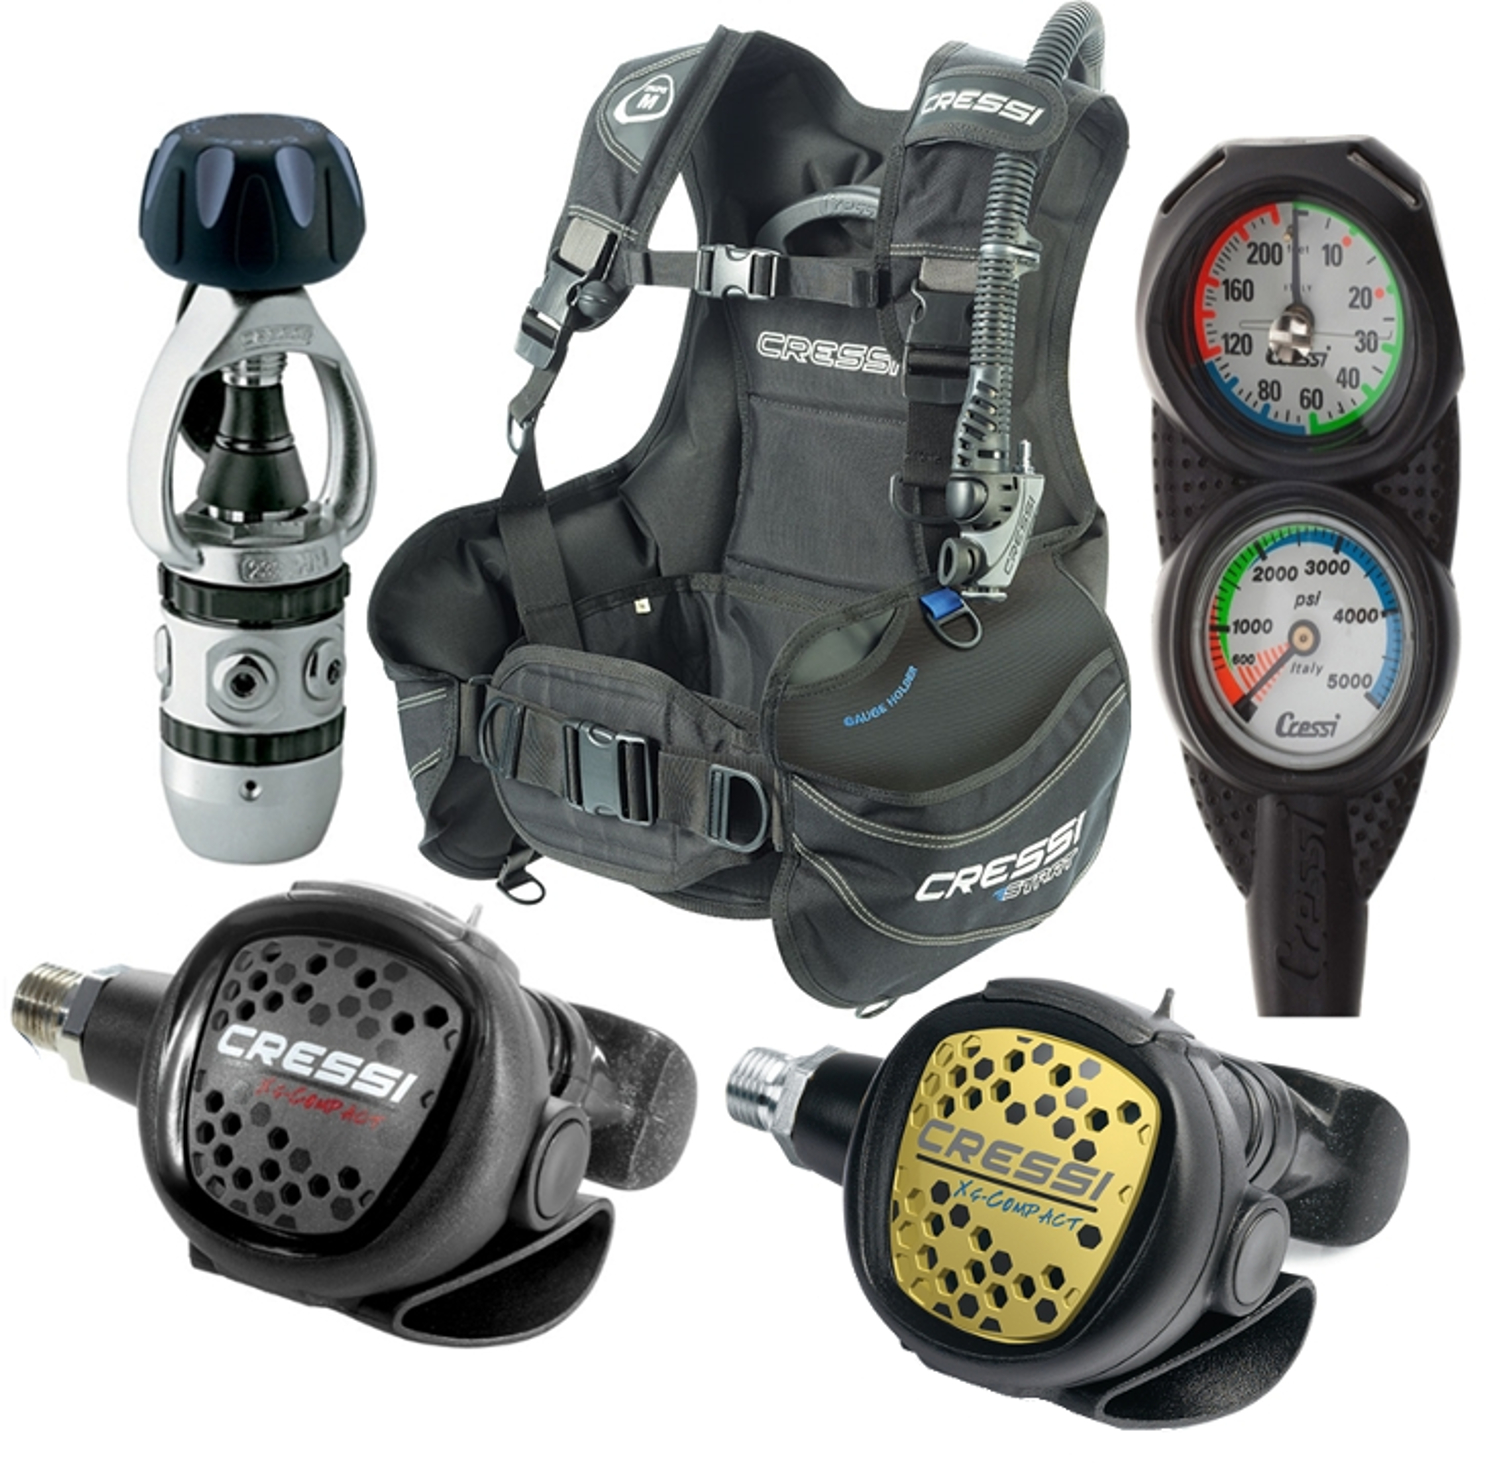 Cressi Start BCD Regulator Octo and Gauge Package